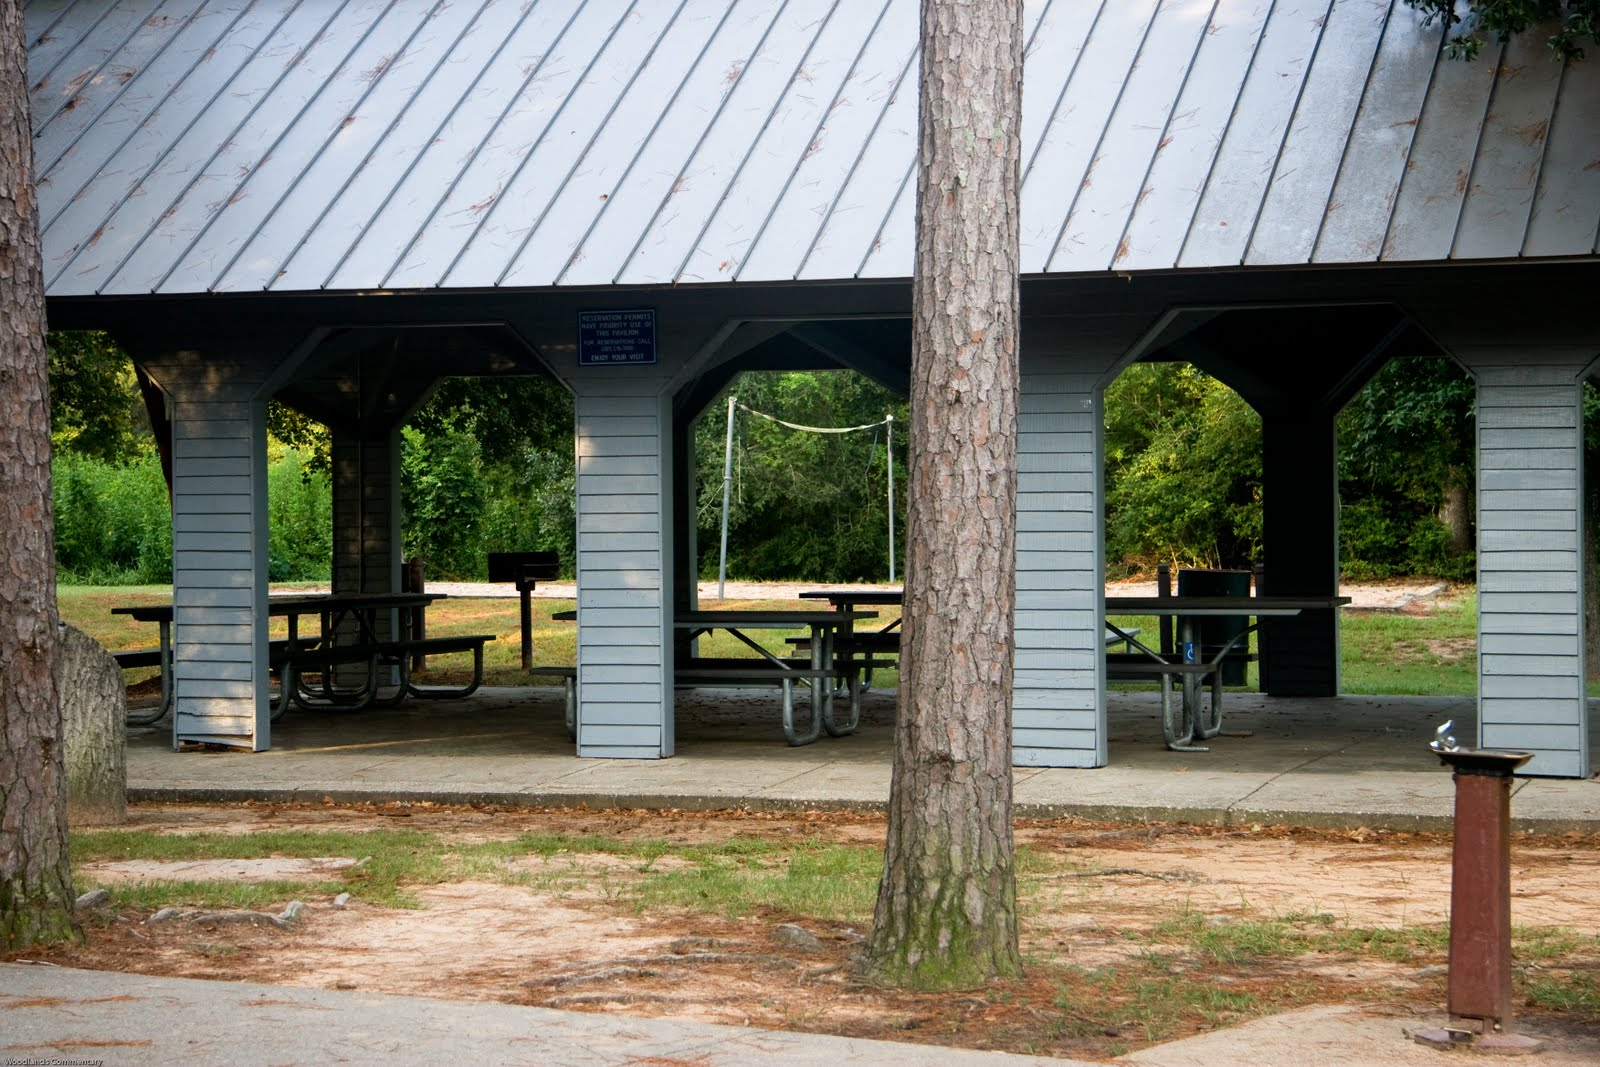 The Woodlands Texas Parks: Shadowbend Park in The ...